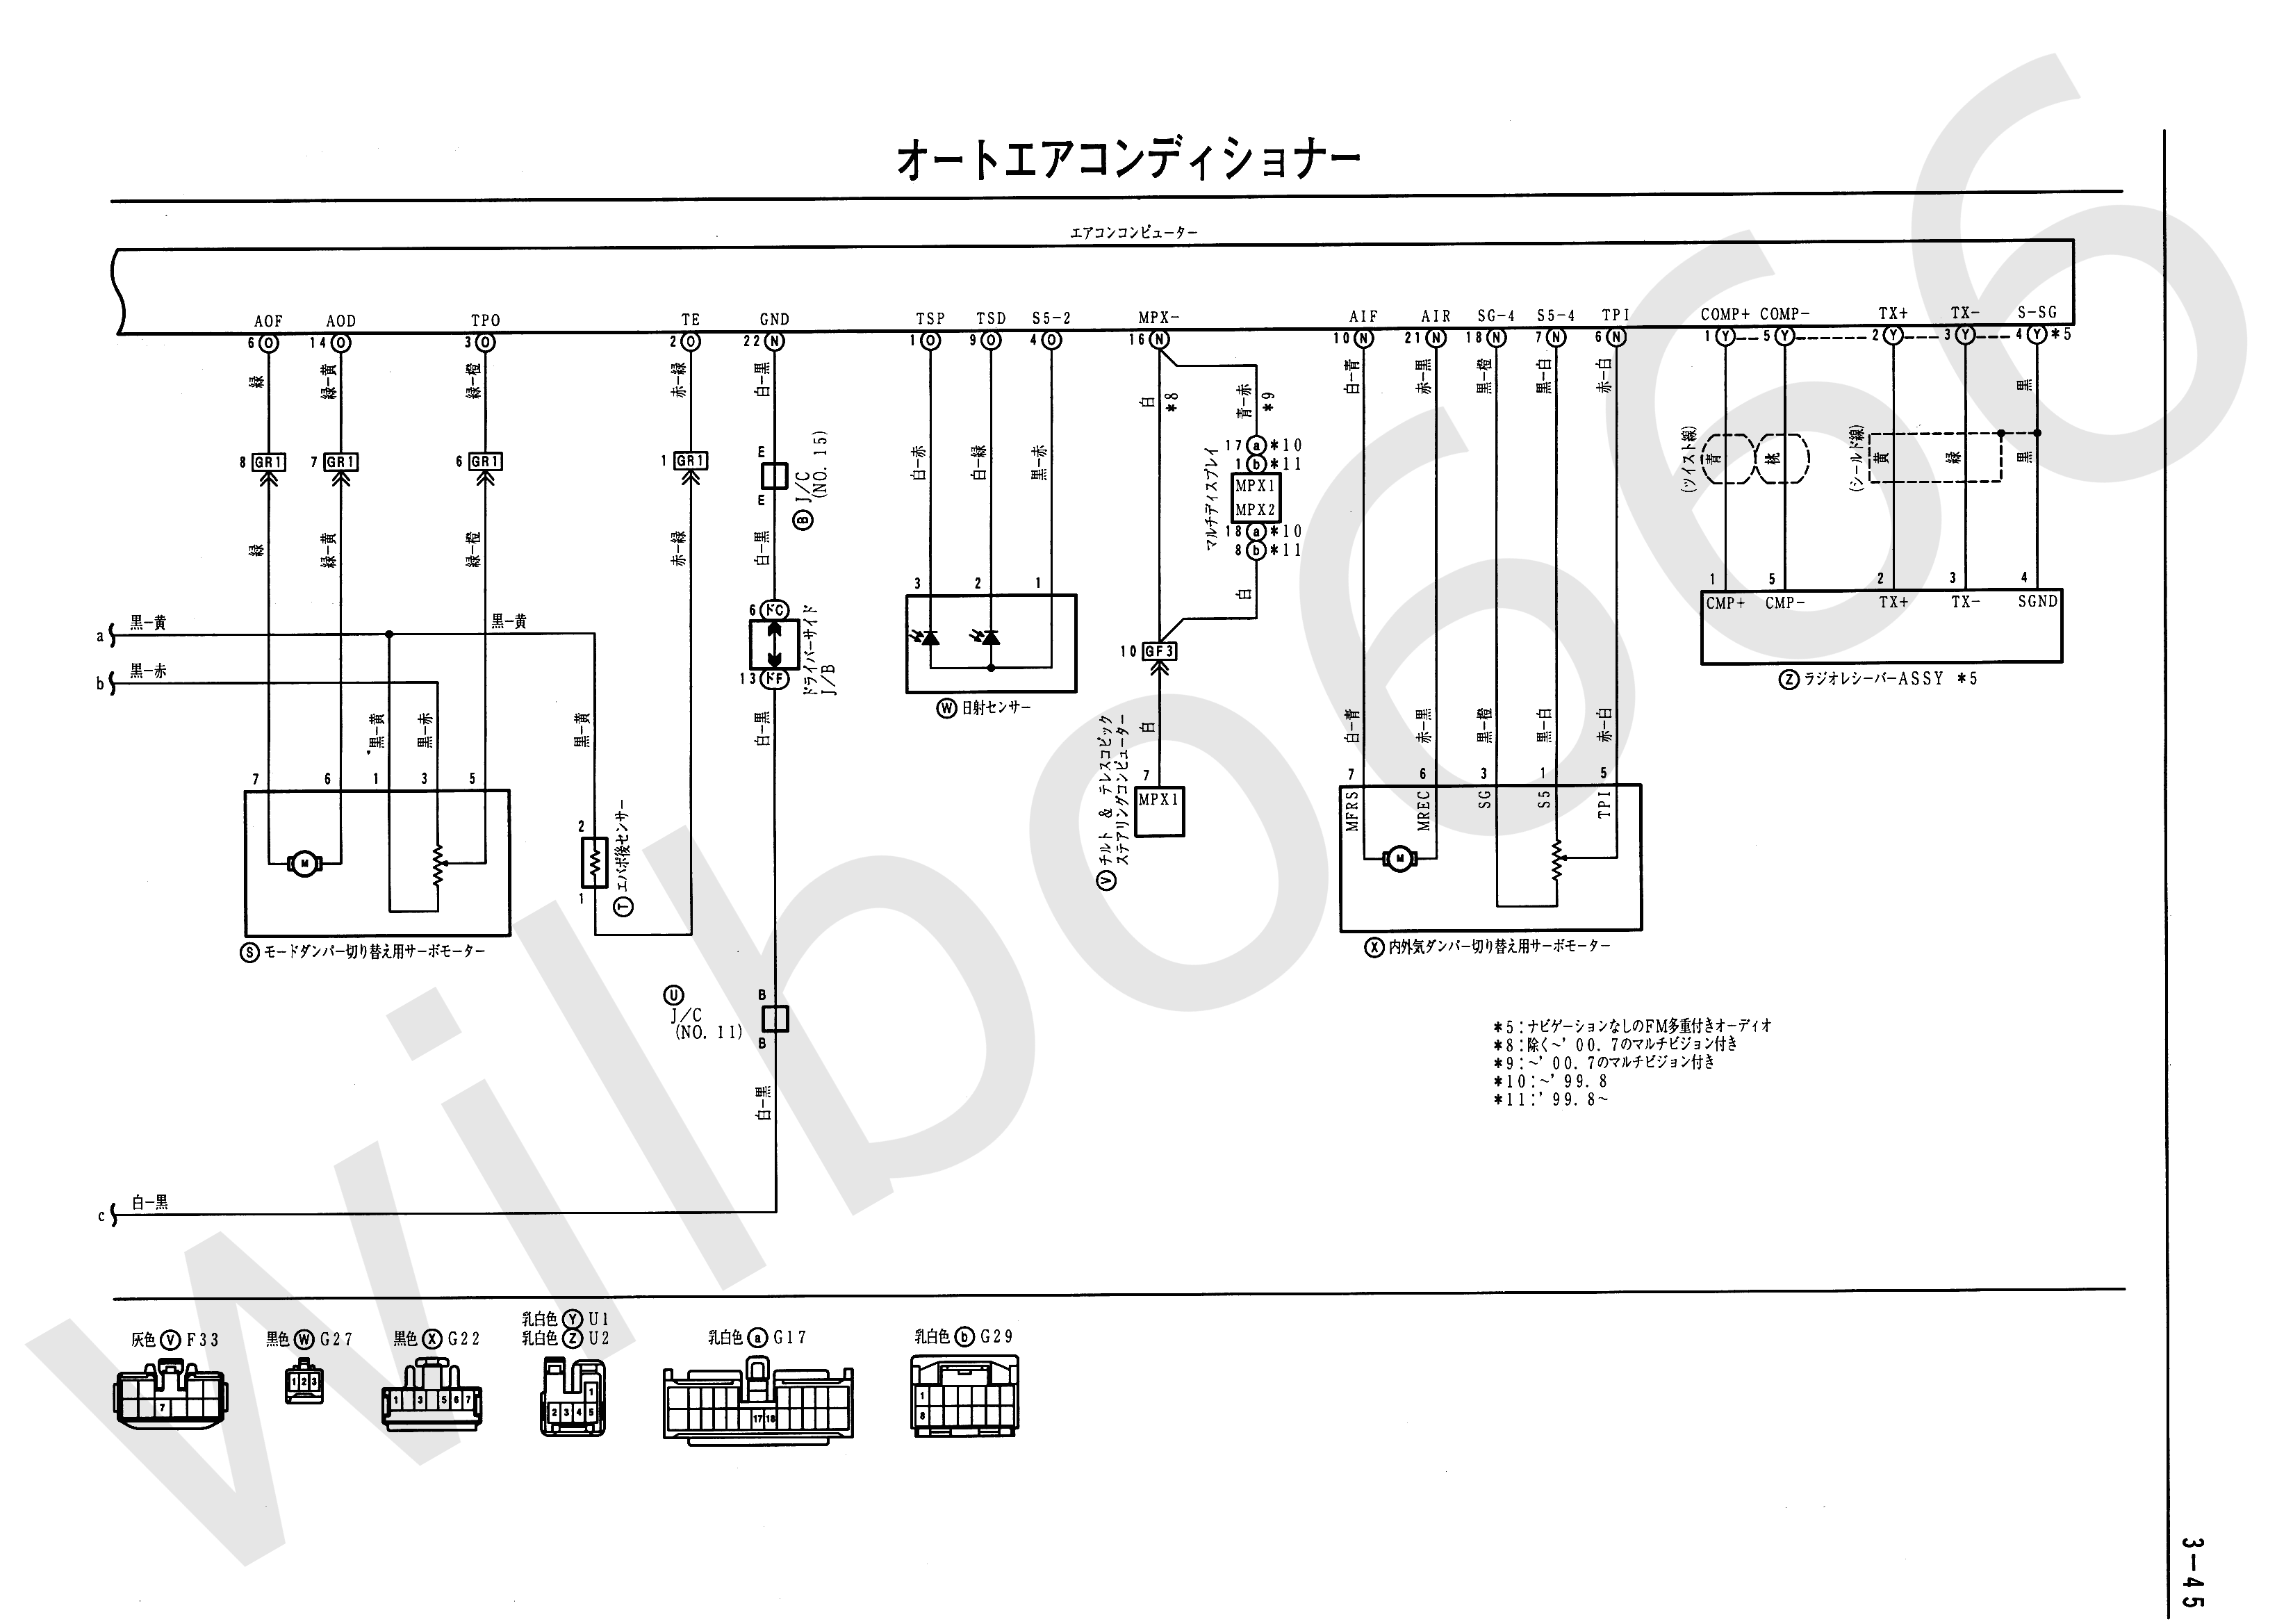 JZS161 Electrical Wiring Diagram 6748505 3 45?resize\\=3300%2C2337 rough house 50cc scooter wiring diagram kymco scooter parts rough in wiring diagram at eliteediting.co